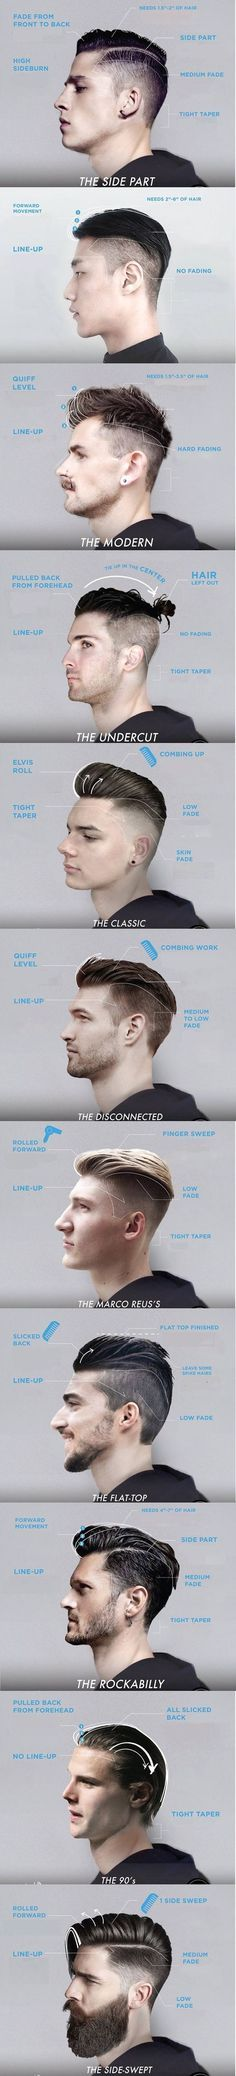 Here's a list of popular styles that we are seeing a lot on men all over social media, from a traditional side cut and for the more daring ones, the man bun. Perhaps, you might find one that will inspire your next cut.